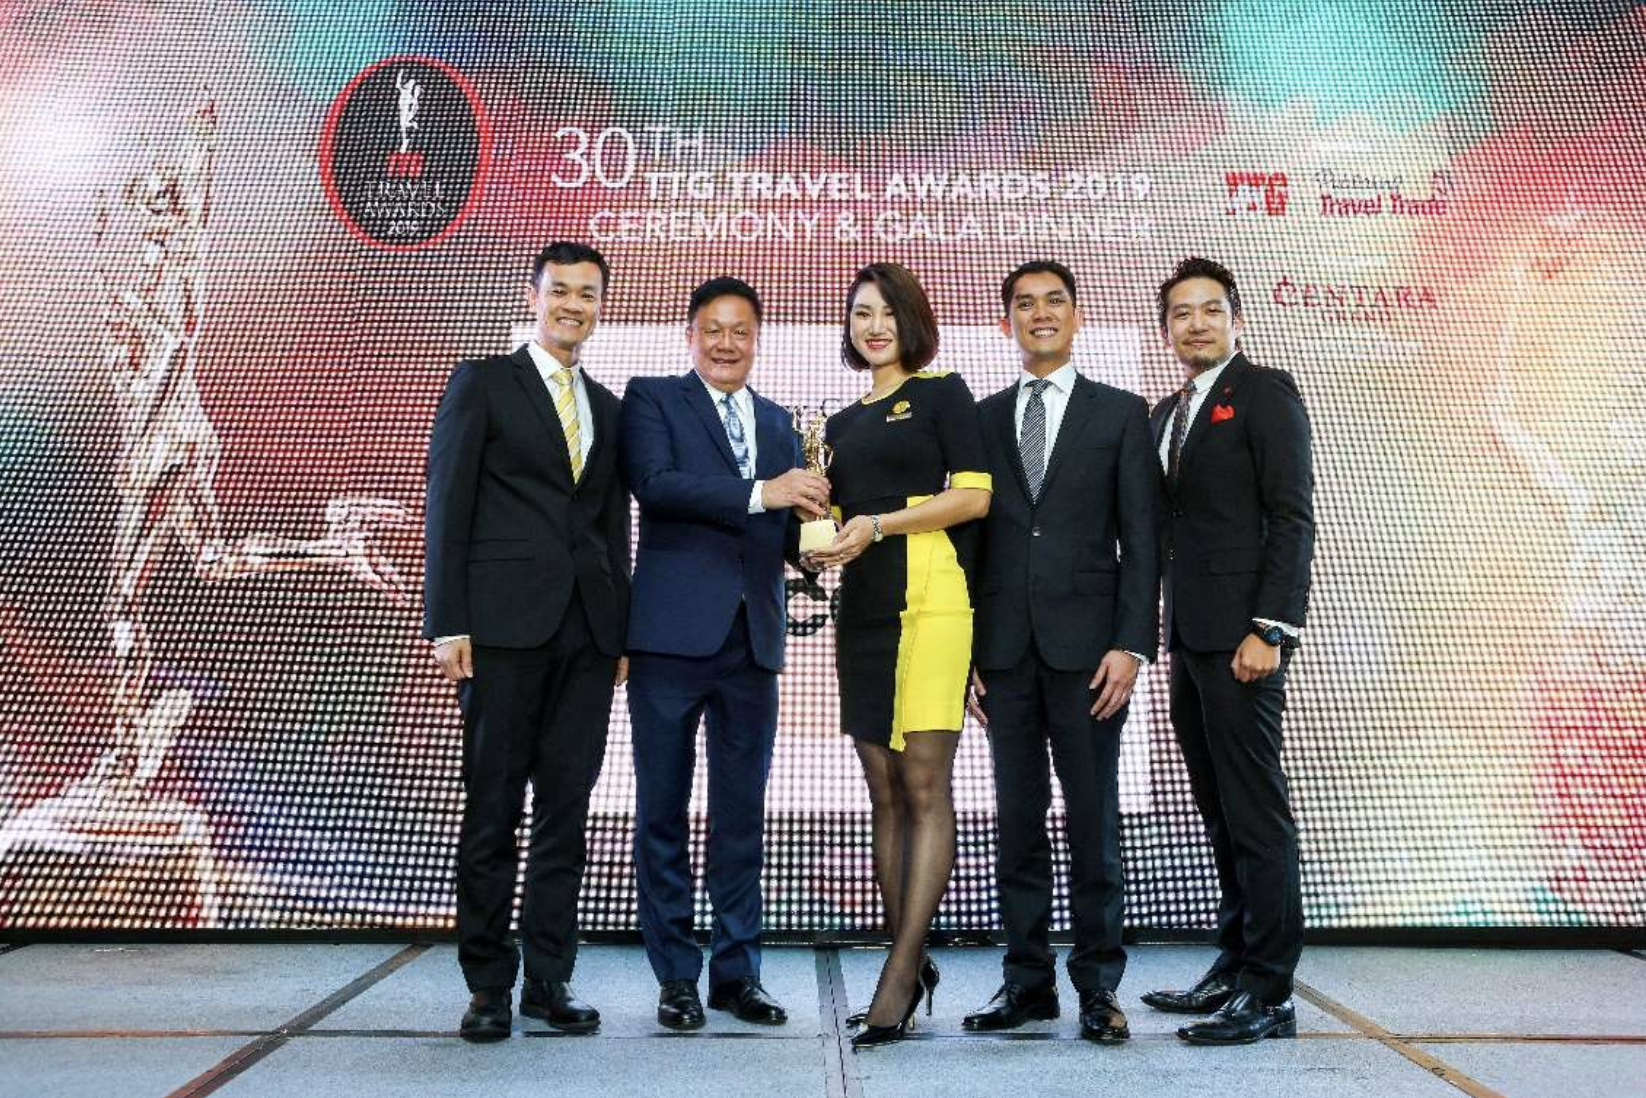 (From left) Lee Lik Hsin, Scoot Chief Executive Officer; Darren Ng, Managing Director of TTG Asia, Media; Zoey Zuo, Scoot Cabin Crew; Calvin Chan, Scoot Acting Chief Commercial Officer; and Pierre Quek, Publisher TTG Travel Trade Publishing, on stage for the award ceremony. Photo courtesy: Scoot